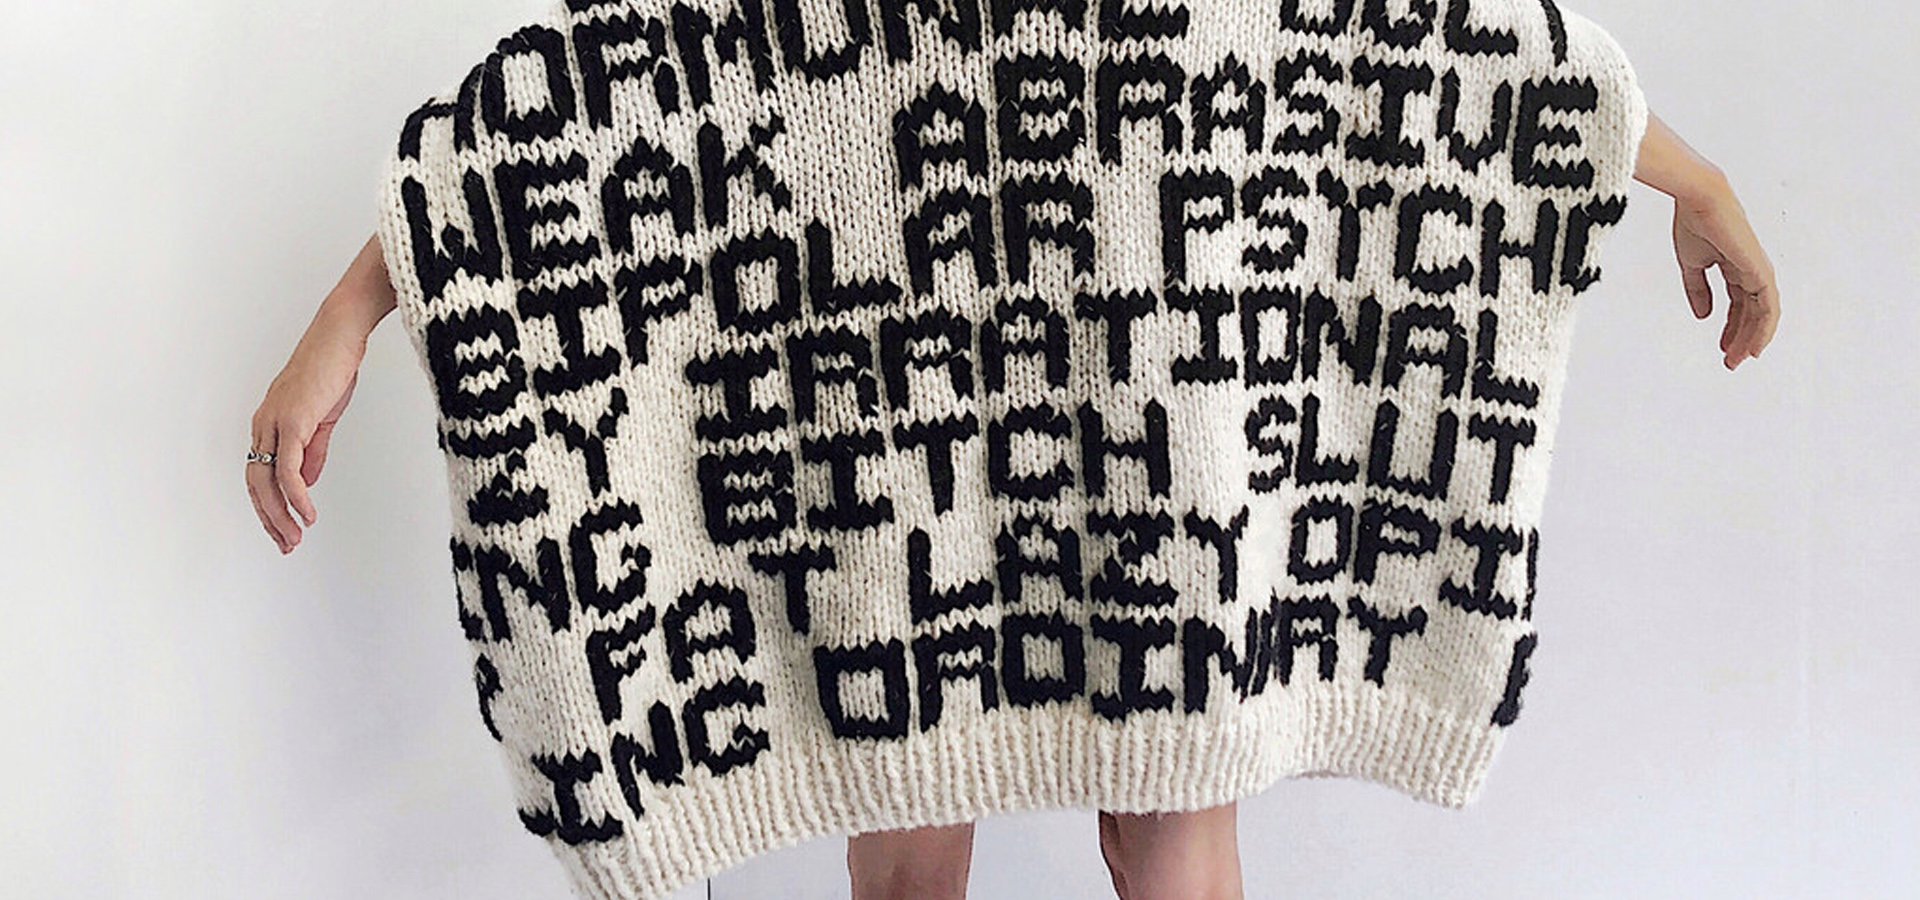 A beige sweater with phrases knitted into it in black yarn.